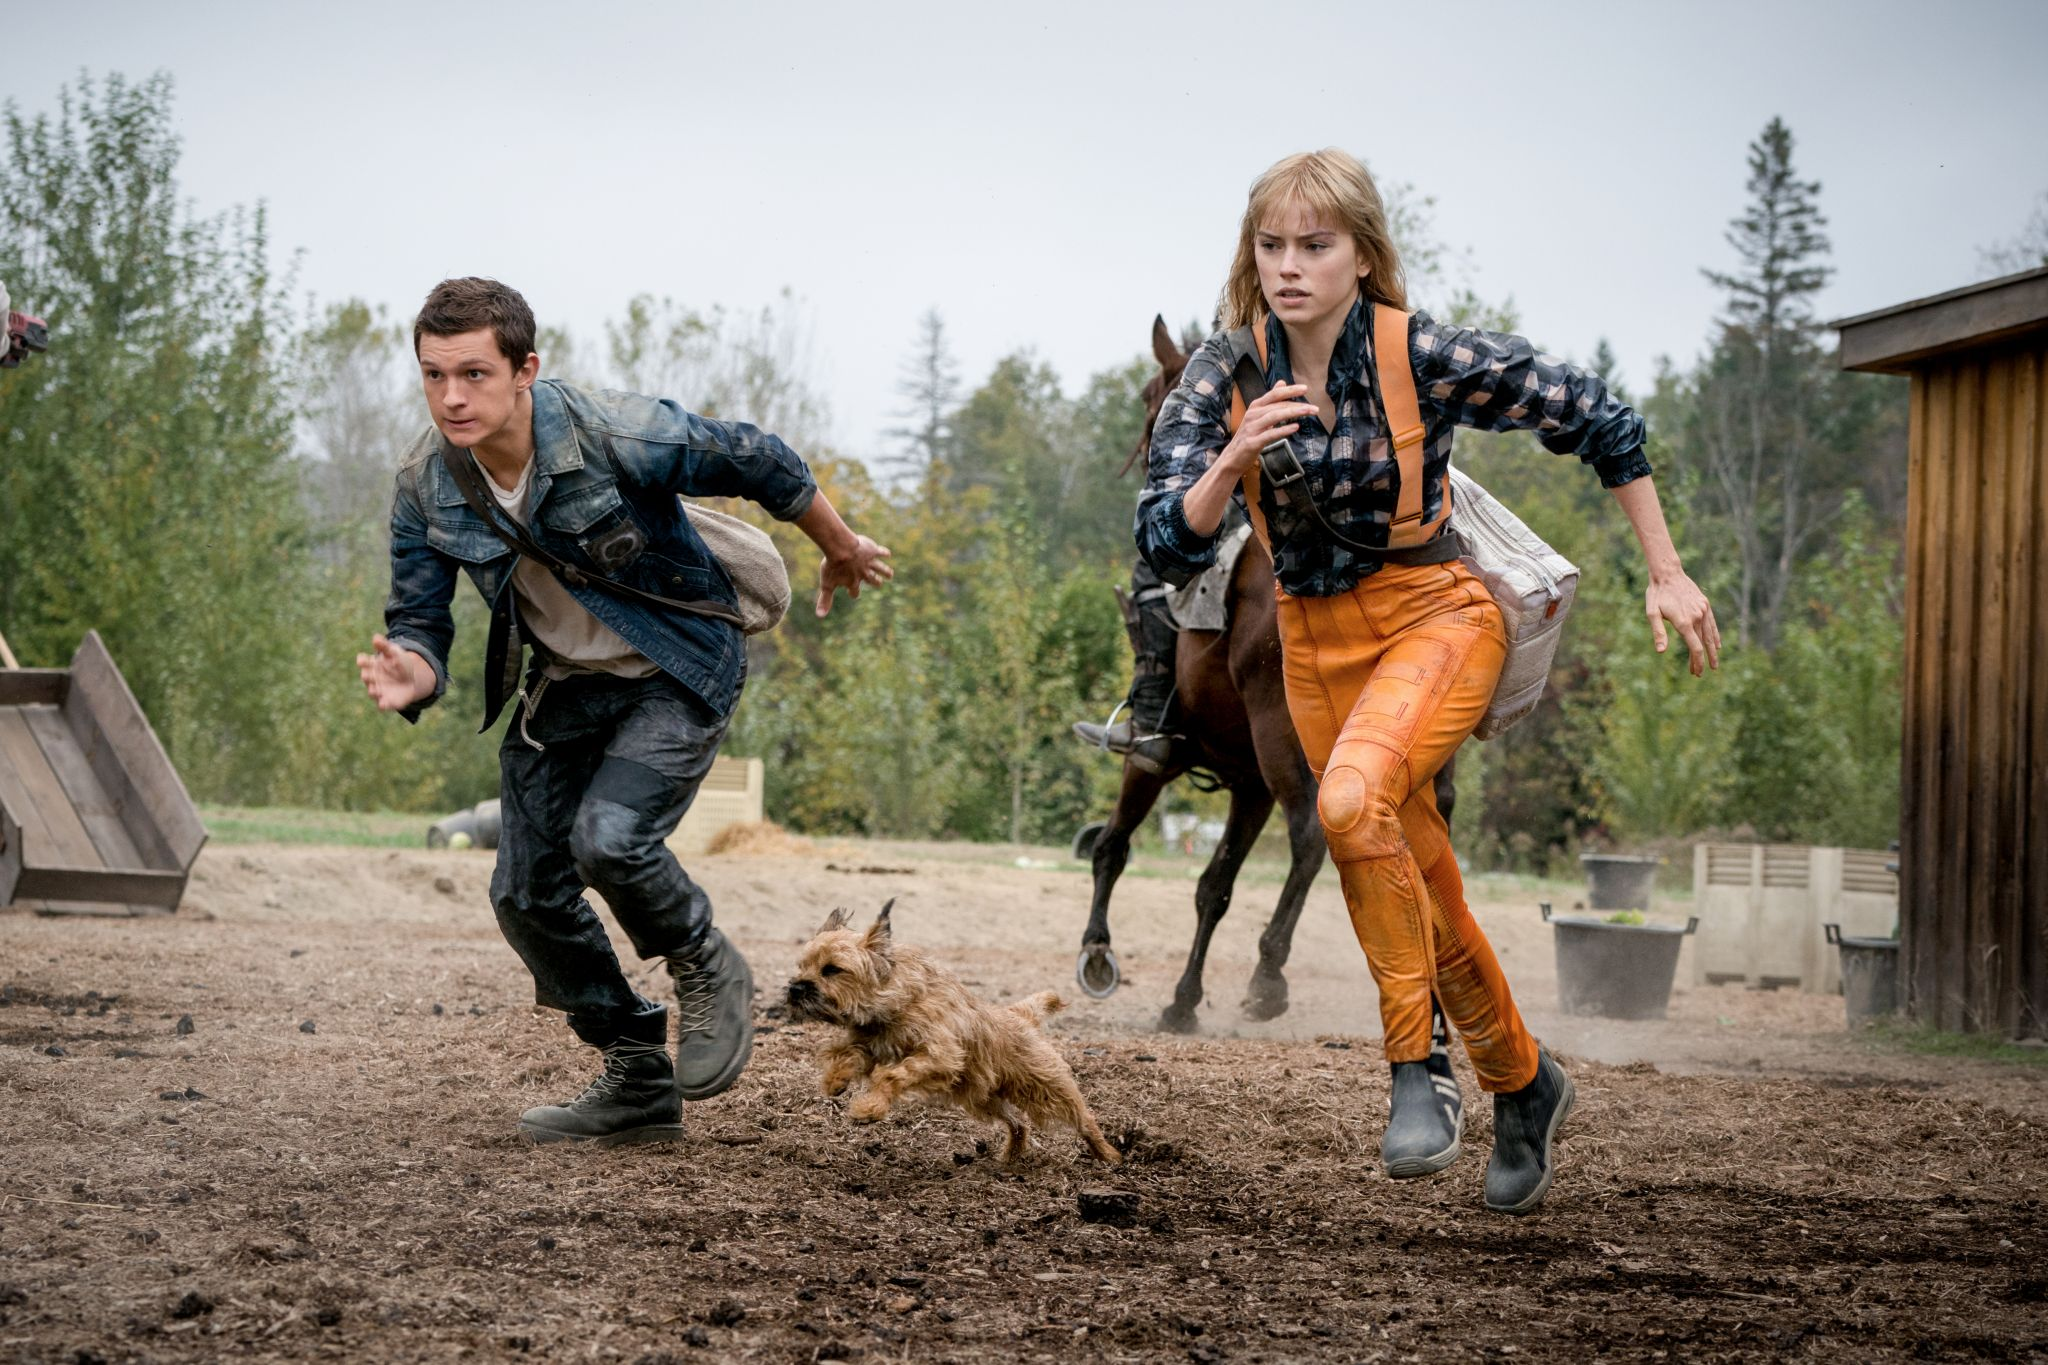 Enter for a chance to win a stream code for the film 'Chaos Walking'